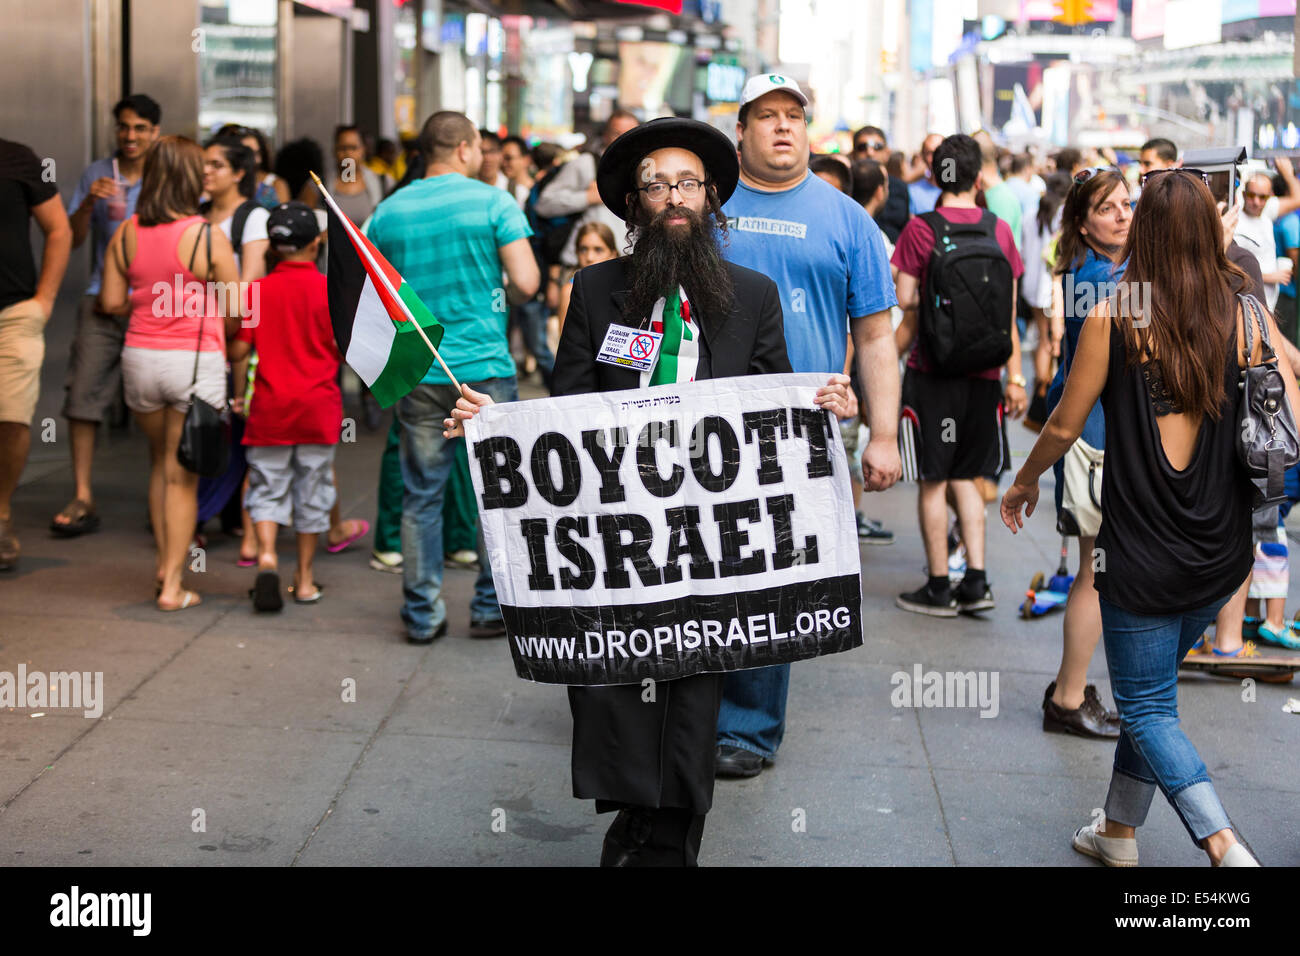 Jewish man holding a sign 'Boycott Israel' while demonstrating on the 42nd Street in New York City - Stock Image